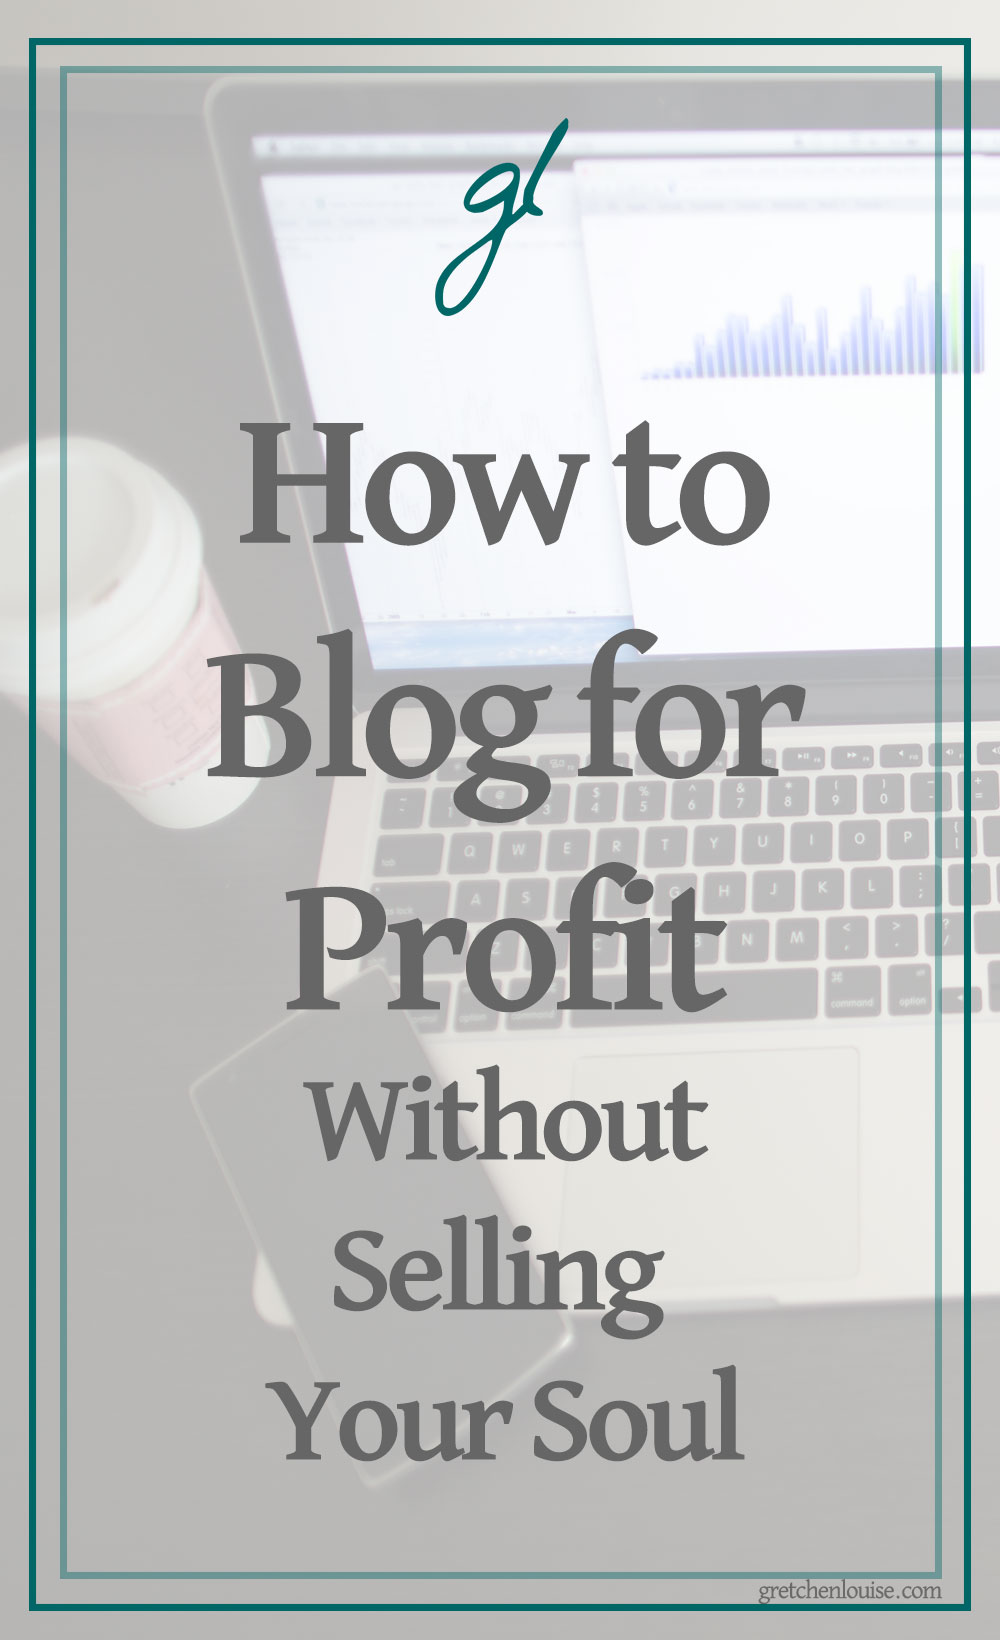 You'll be sure to get back your investment if you buy How to Blog for Profit (Without Selling Your Soul). And if profit wasn't one of your blogging goals, Ruth's eBook will give you a realistic look at what's involved--and the potential. via @GretLouise